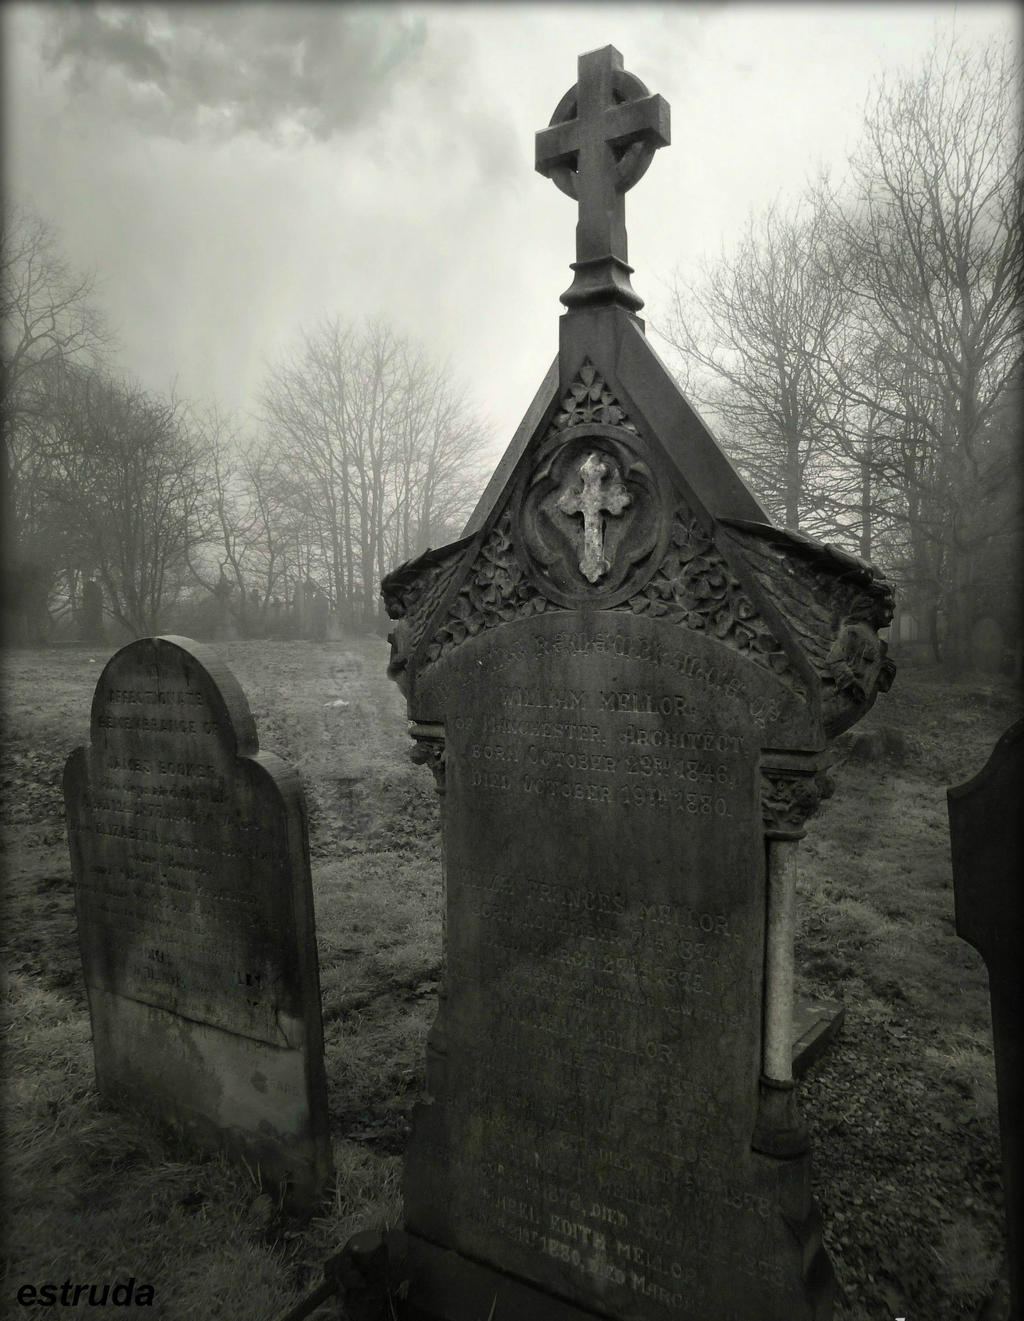 The Child Between The Tombstones by Estruda